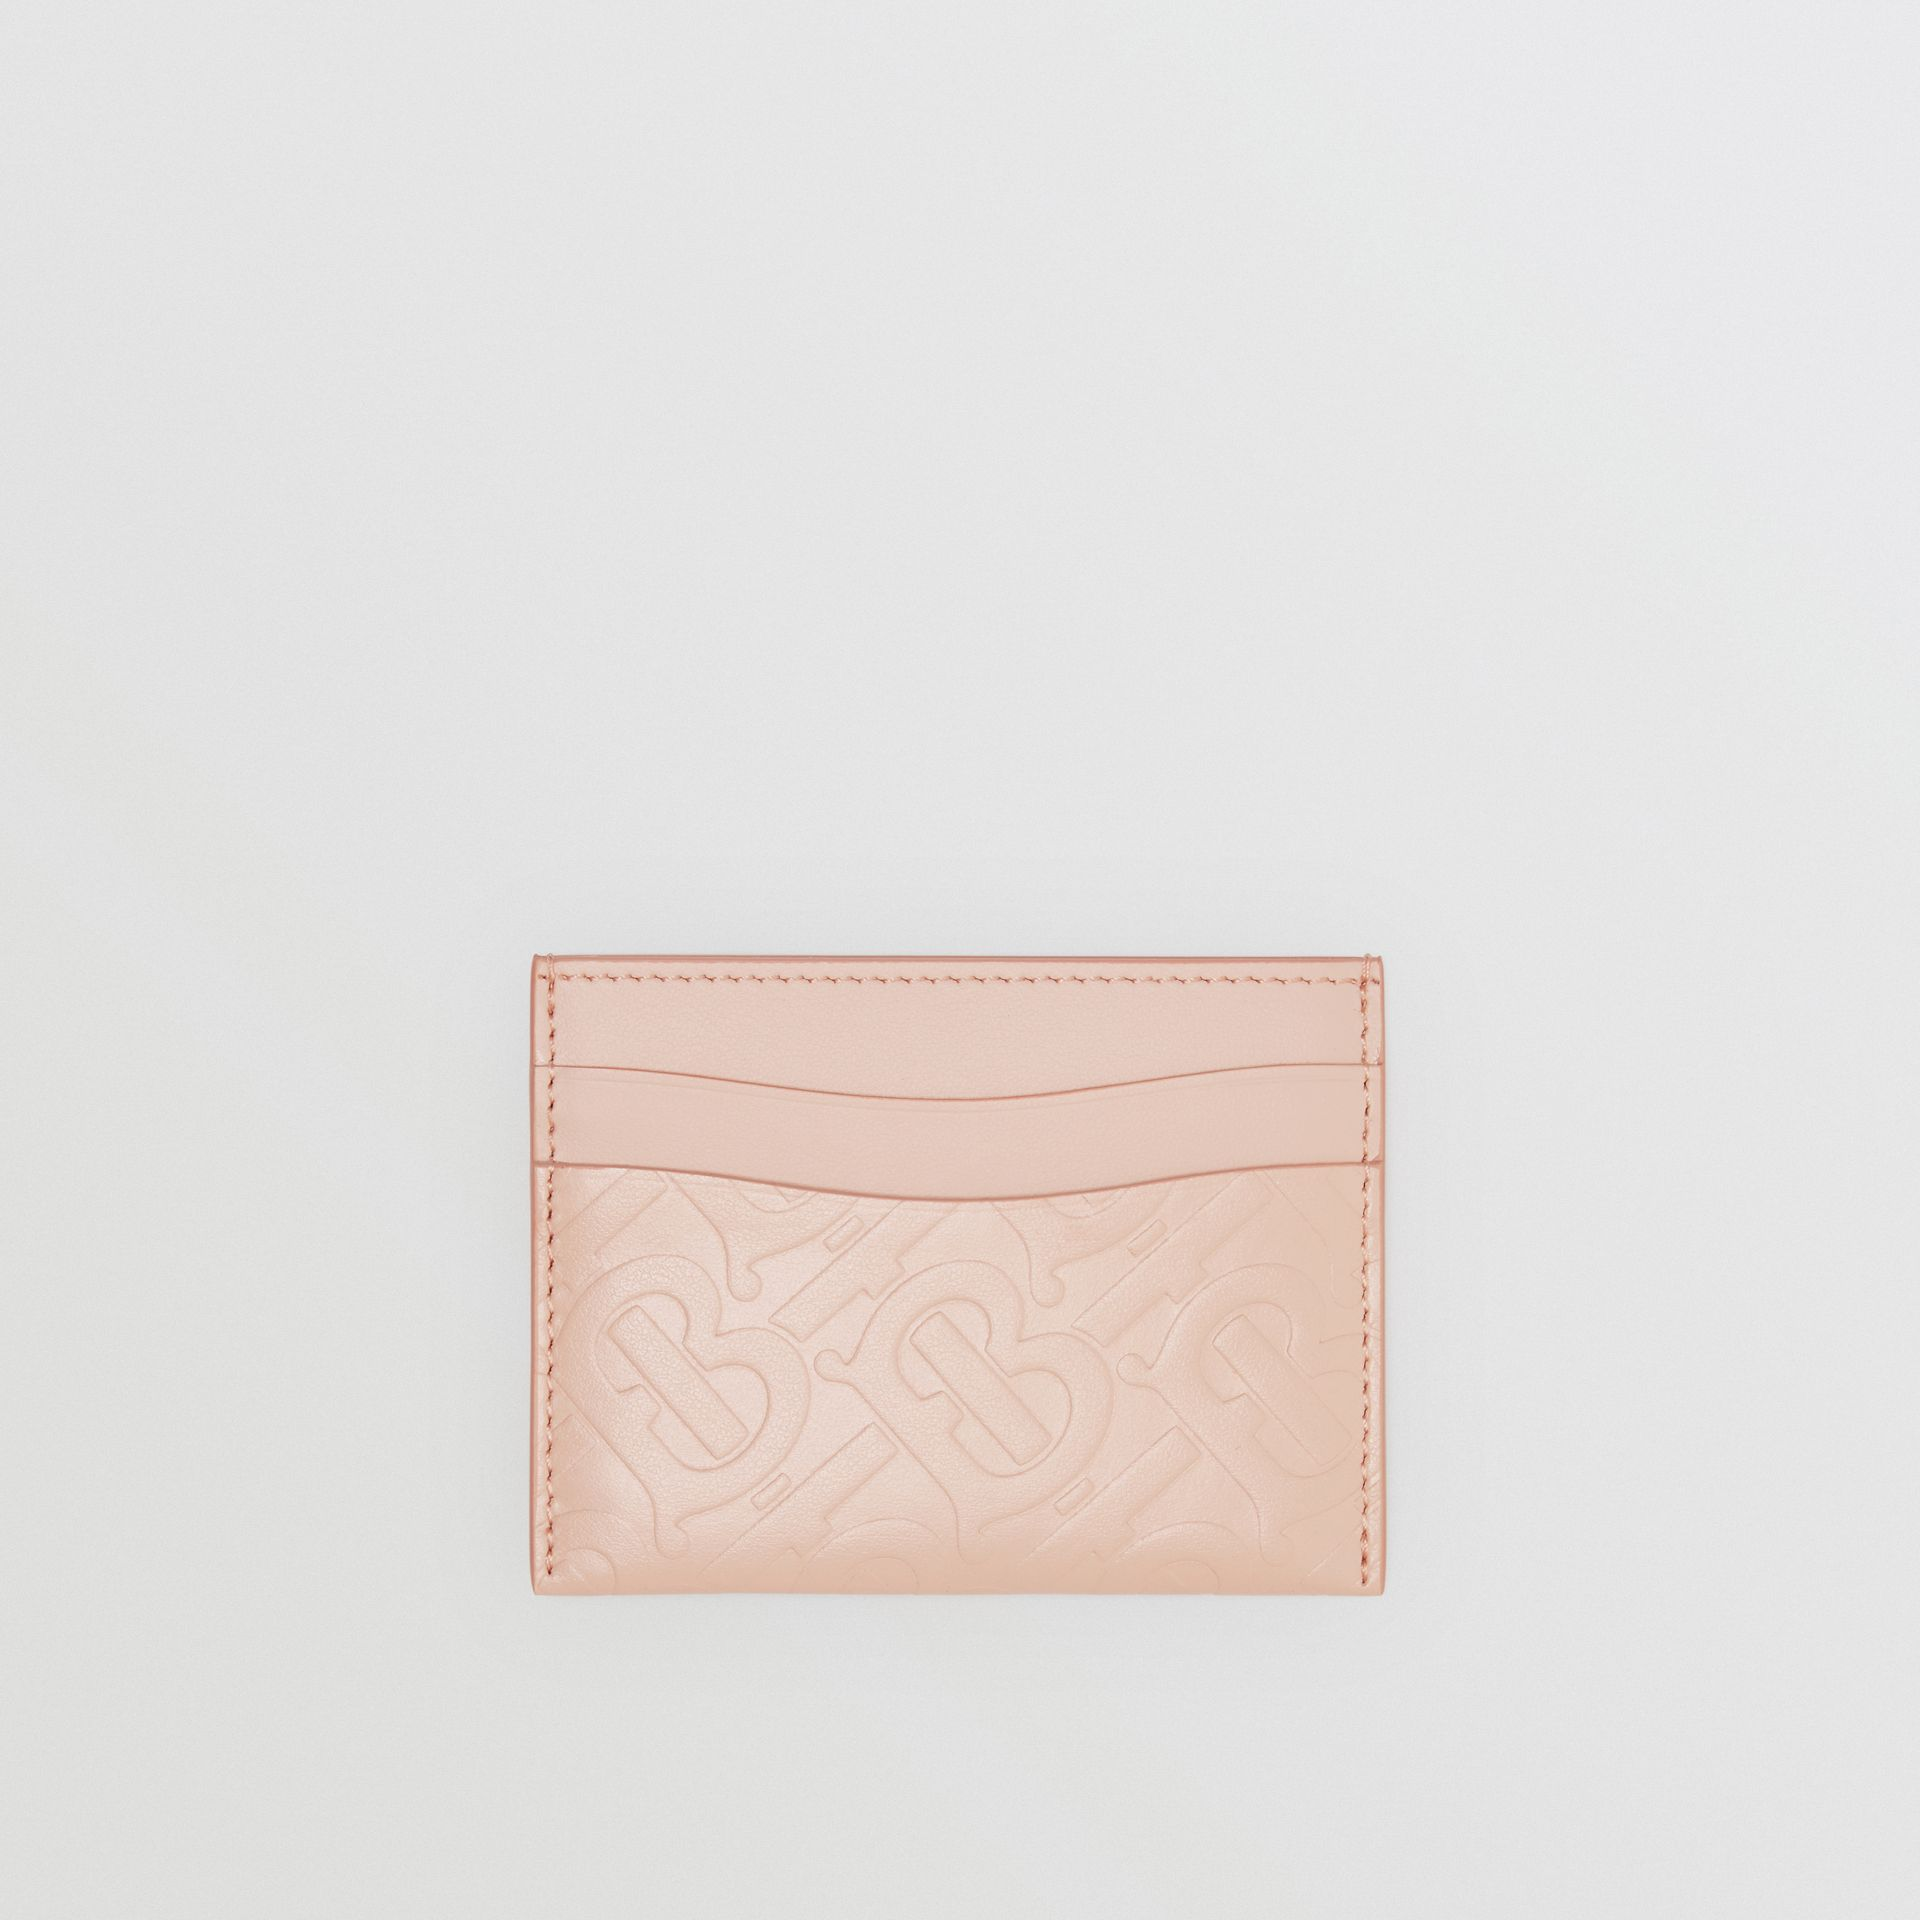 Monogram Leather Card Case in Rose Beige - Women | Burberry - gallery image 0